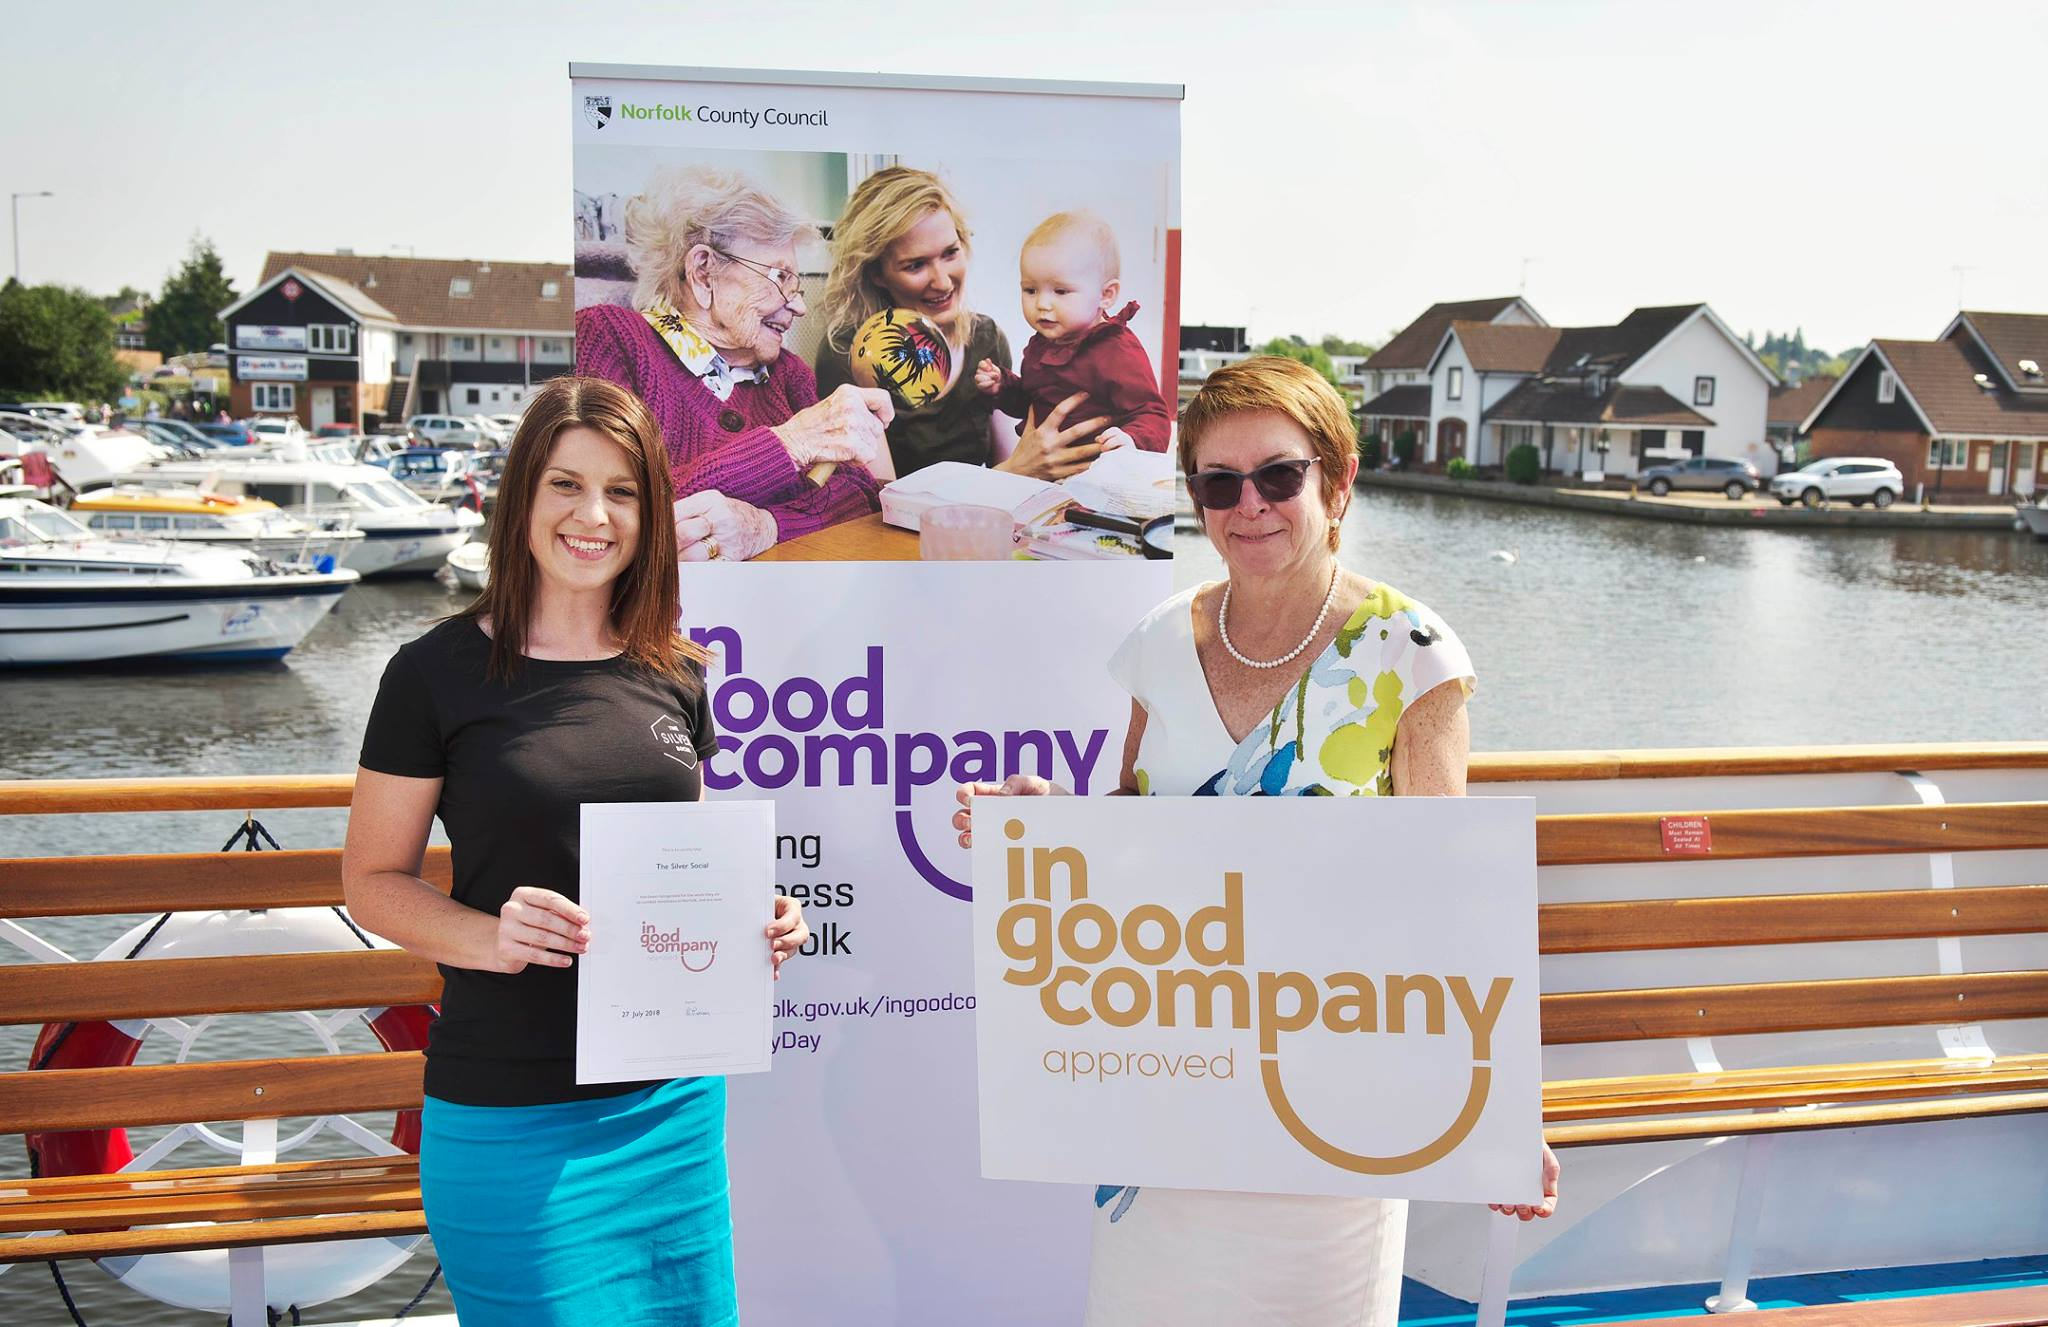 Dr. Wendy Thompson, Managing Director of Norfolk County Council presenting the In Good Company Quality Mark Award